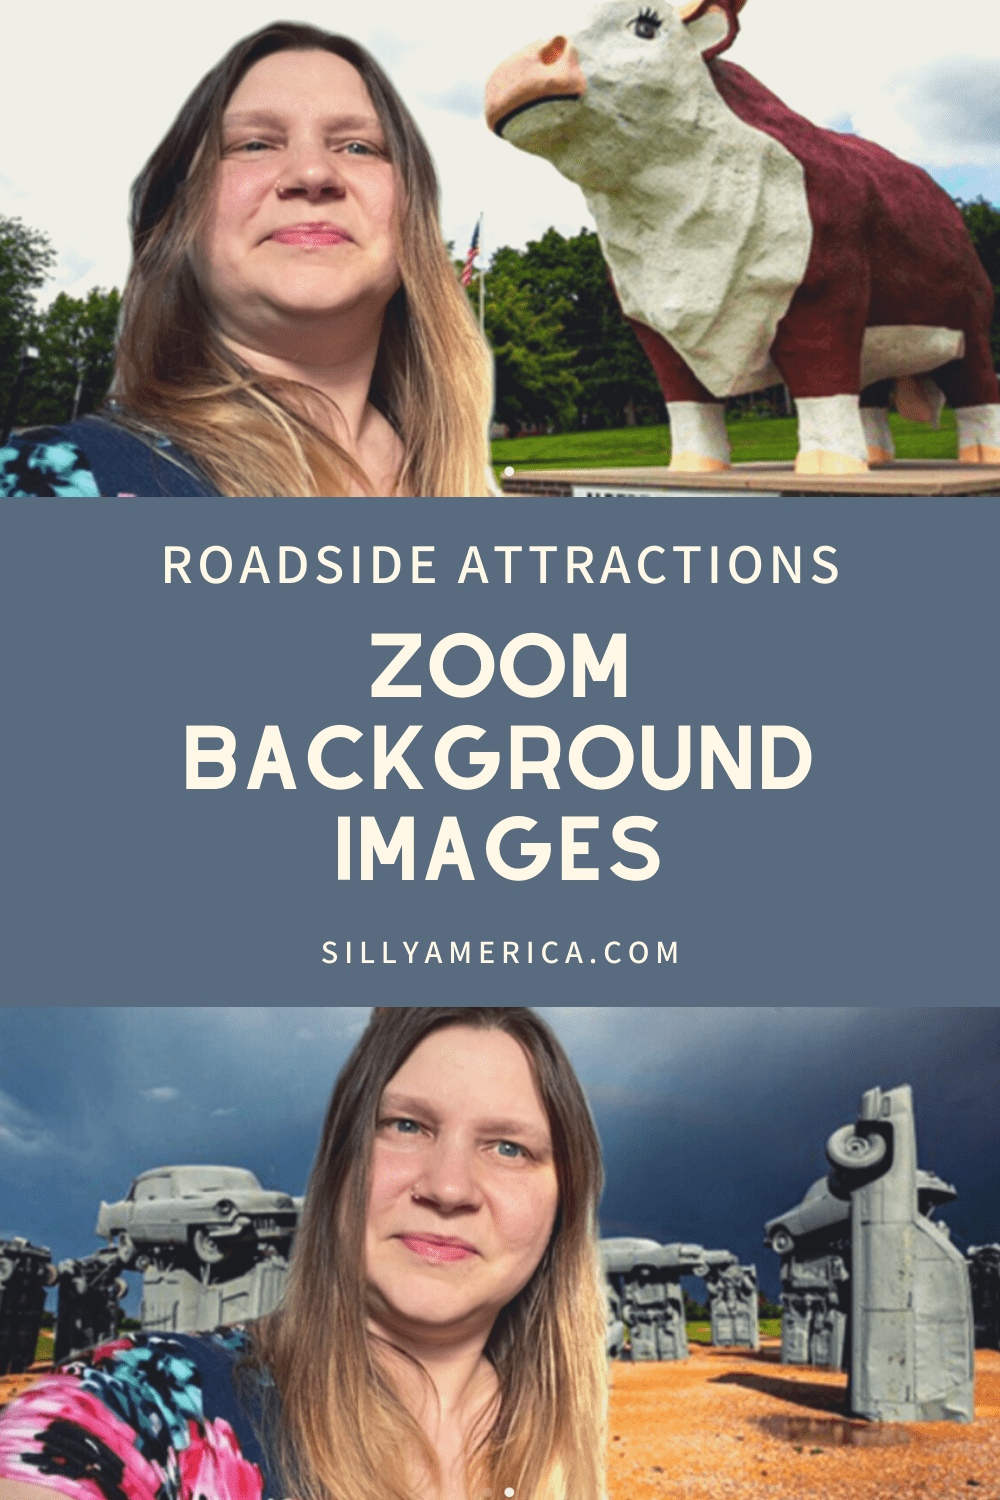 If you're a roadtripper who wishes you were behind the wheel instead of working from home, try these Zoom background images of roadside attractions as a virtual teleconference backdrop while you work from home. #WorkFromHome #Zoom #ZoomBackgrounds #ZoomBackdrops #RoadsideAttraction #RoadsideAttractions #WeirdRoadsideAttractions #VintageRoadsideAttractions #RoadTripStops #WorldsLargestRoadsideAttractions #RoadTrip #USARoadsideAttractions #AmericanRoadsideAttractions #USA #America